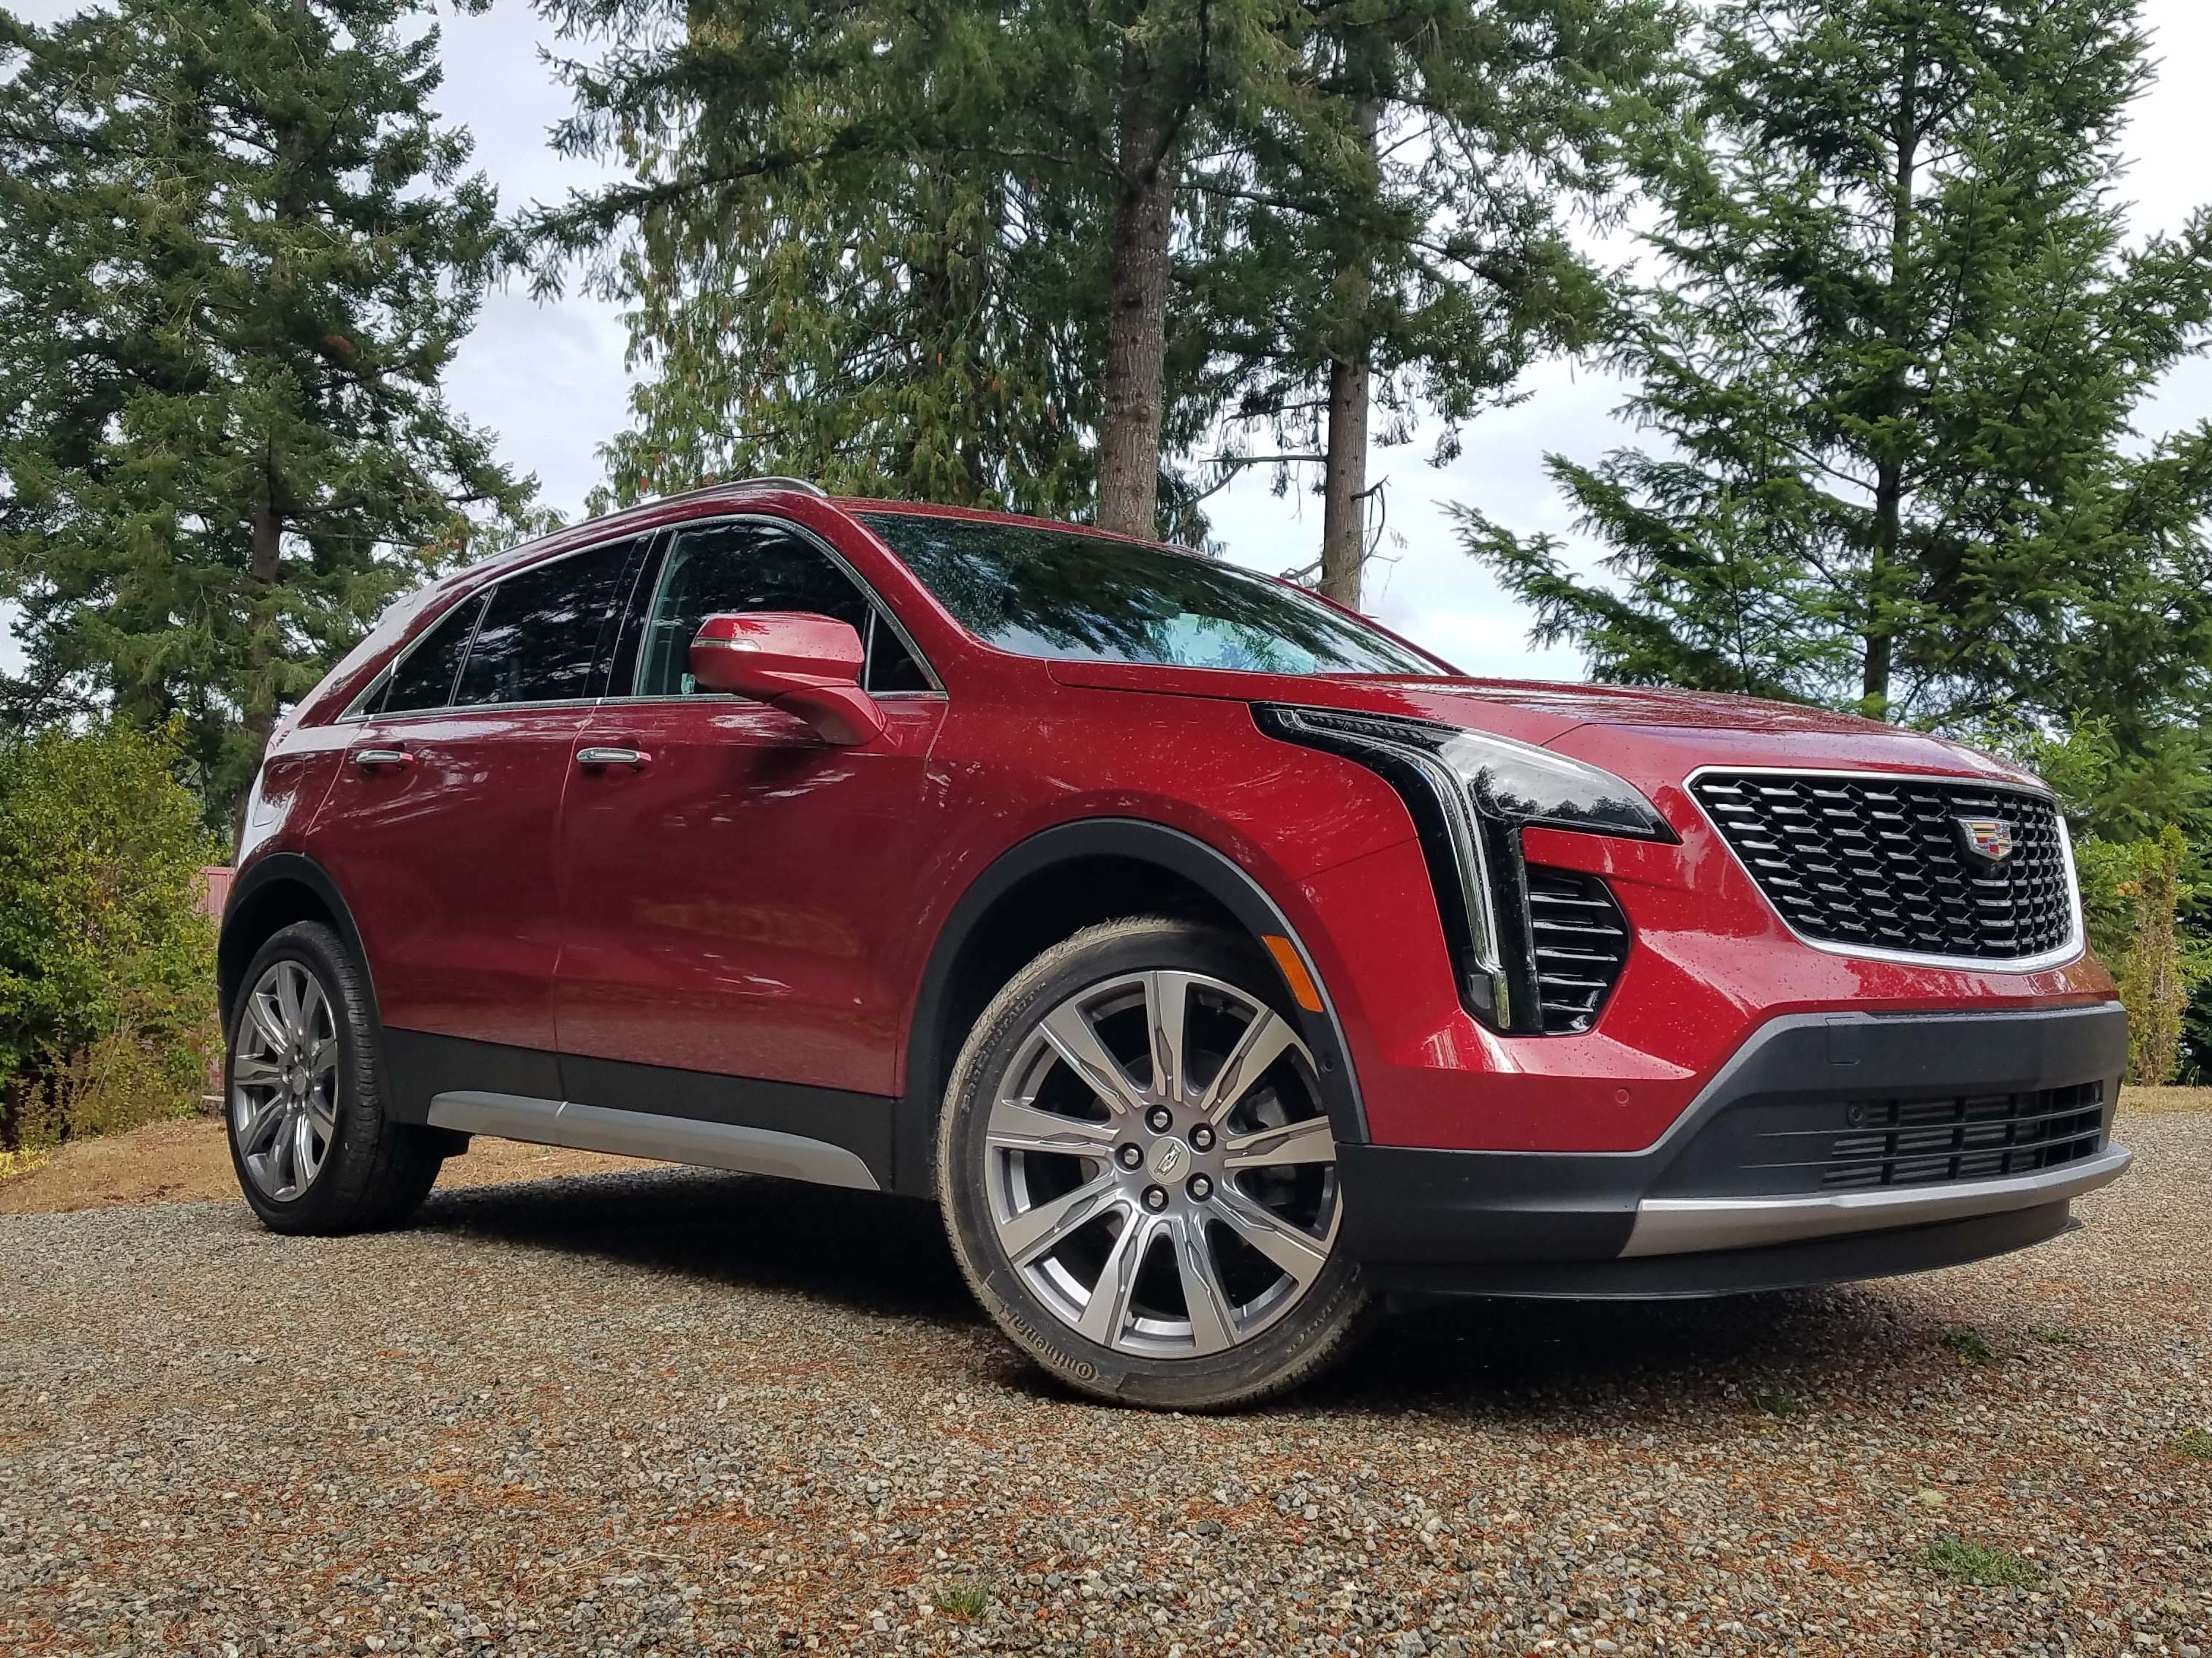 The 2019 Cadillac XT4 gets an all-new platform with lightweight chassis, a tranverse-mounted engine, and front and AWD-drive drivetrain options. The AWD option features twin-clutch torque transfer that aids handling — but is especially helpful in slippery conditions.